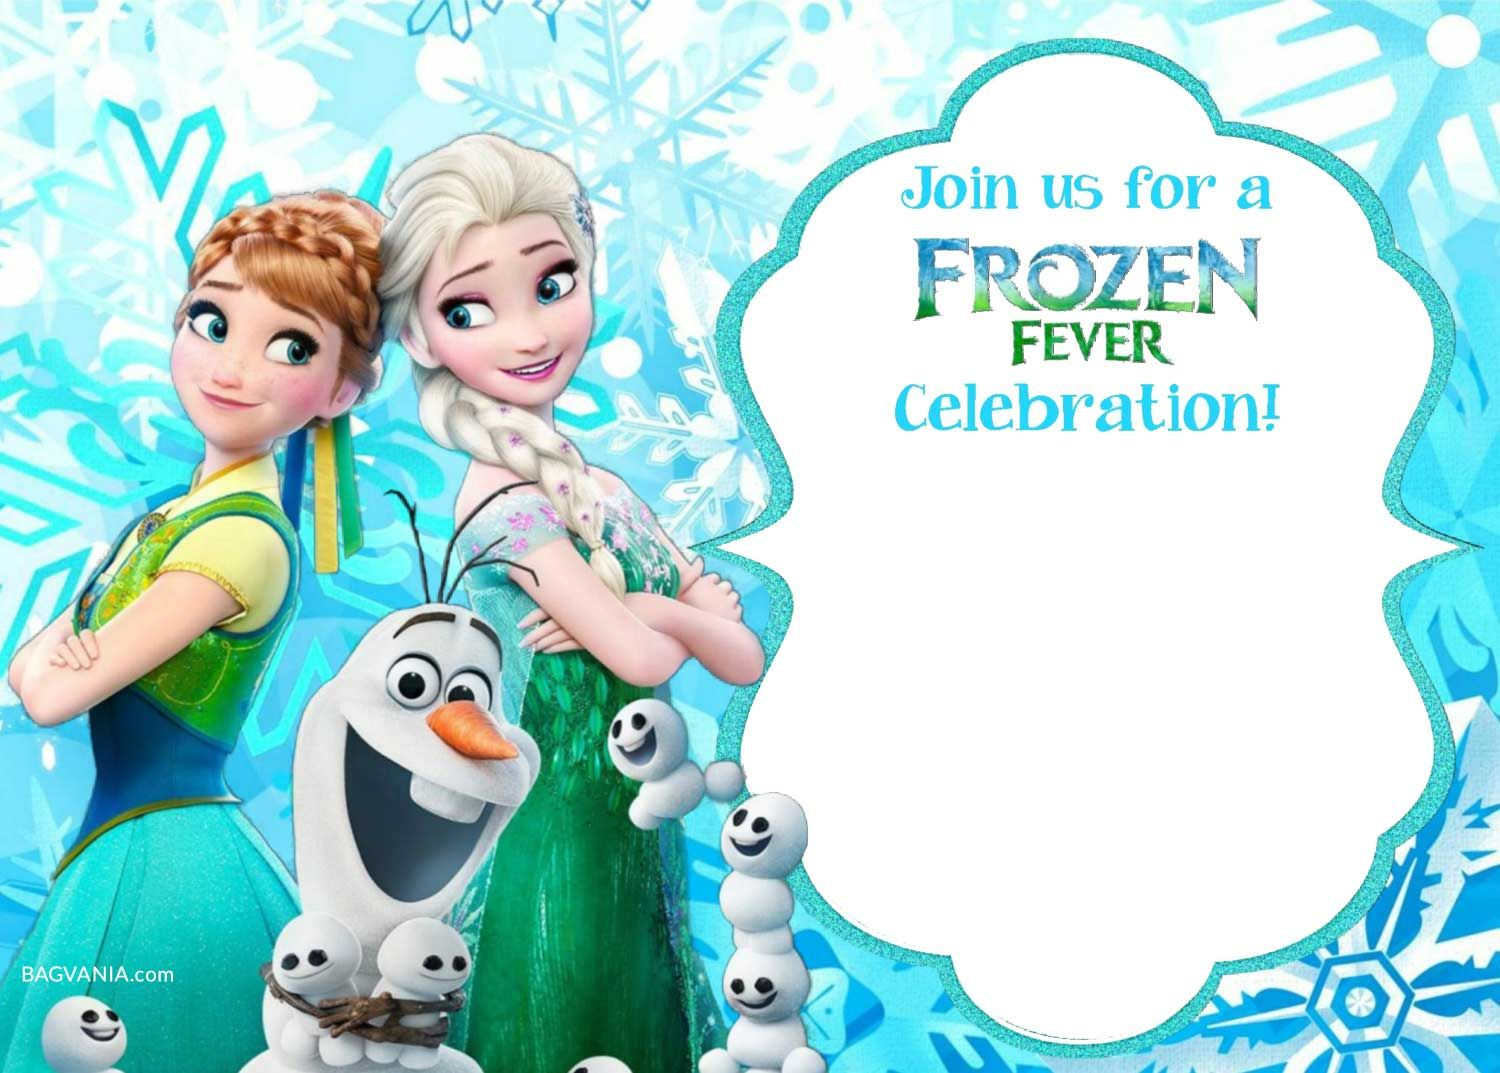 Download Now Free Printable Frozen Invitation Templates Frozen Invitations Frozen Party Invitations Printable Birthday Invitations